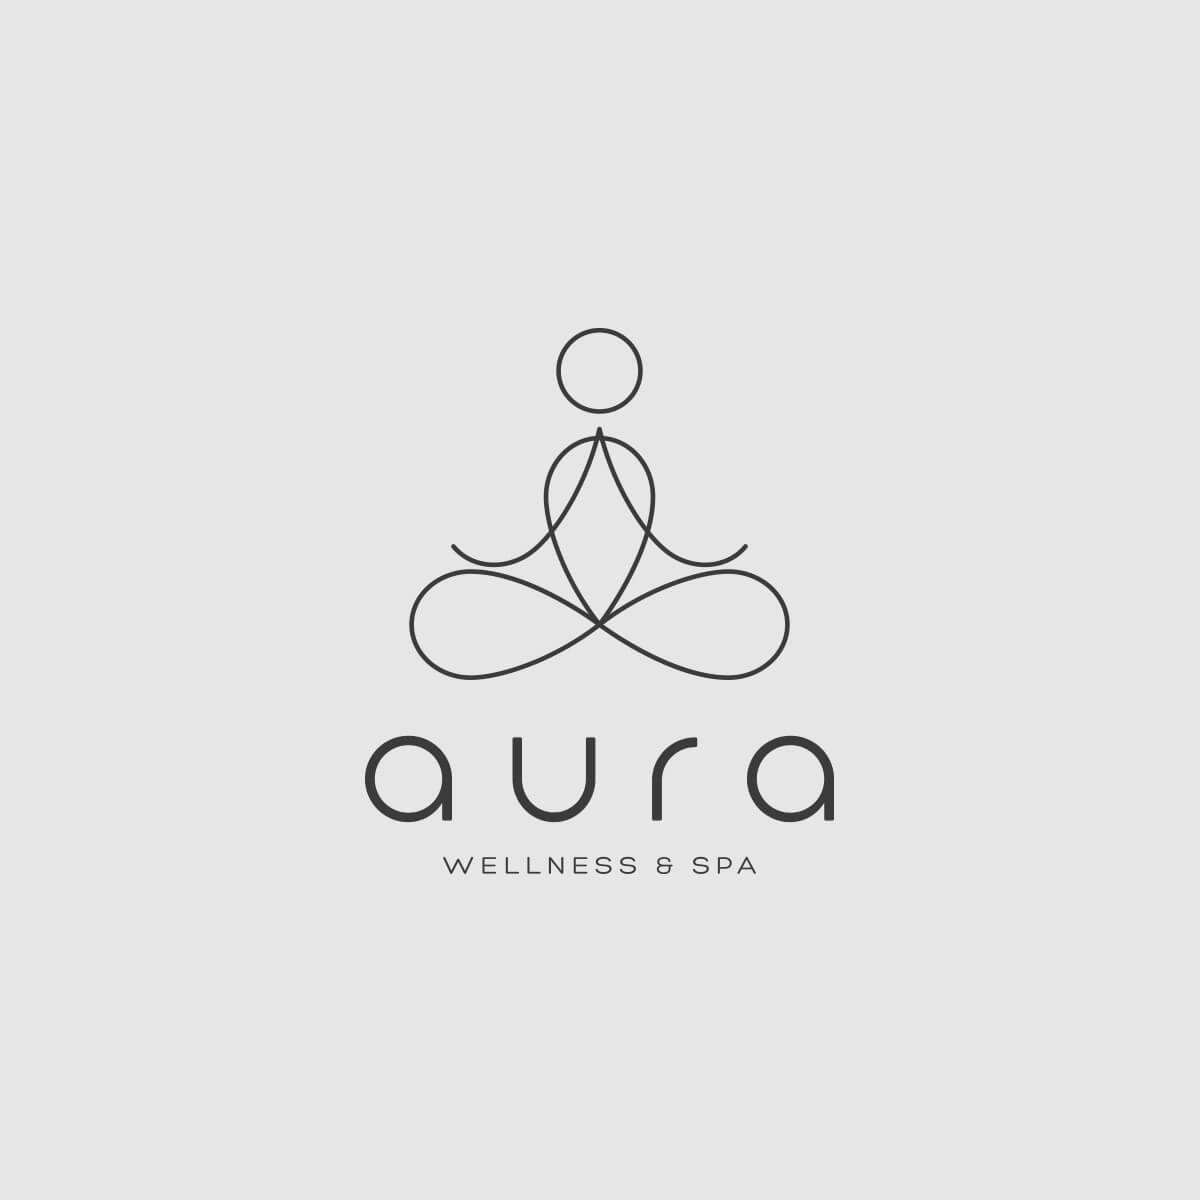 Aura - wellness & spa